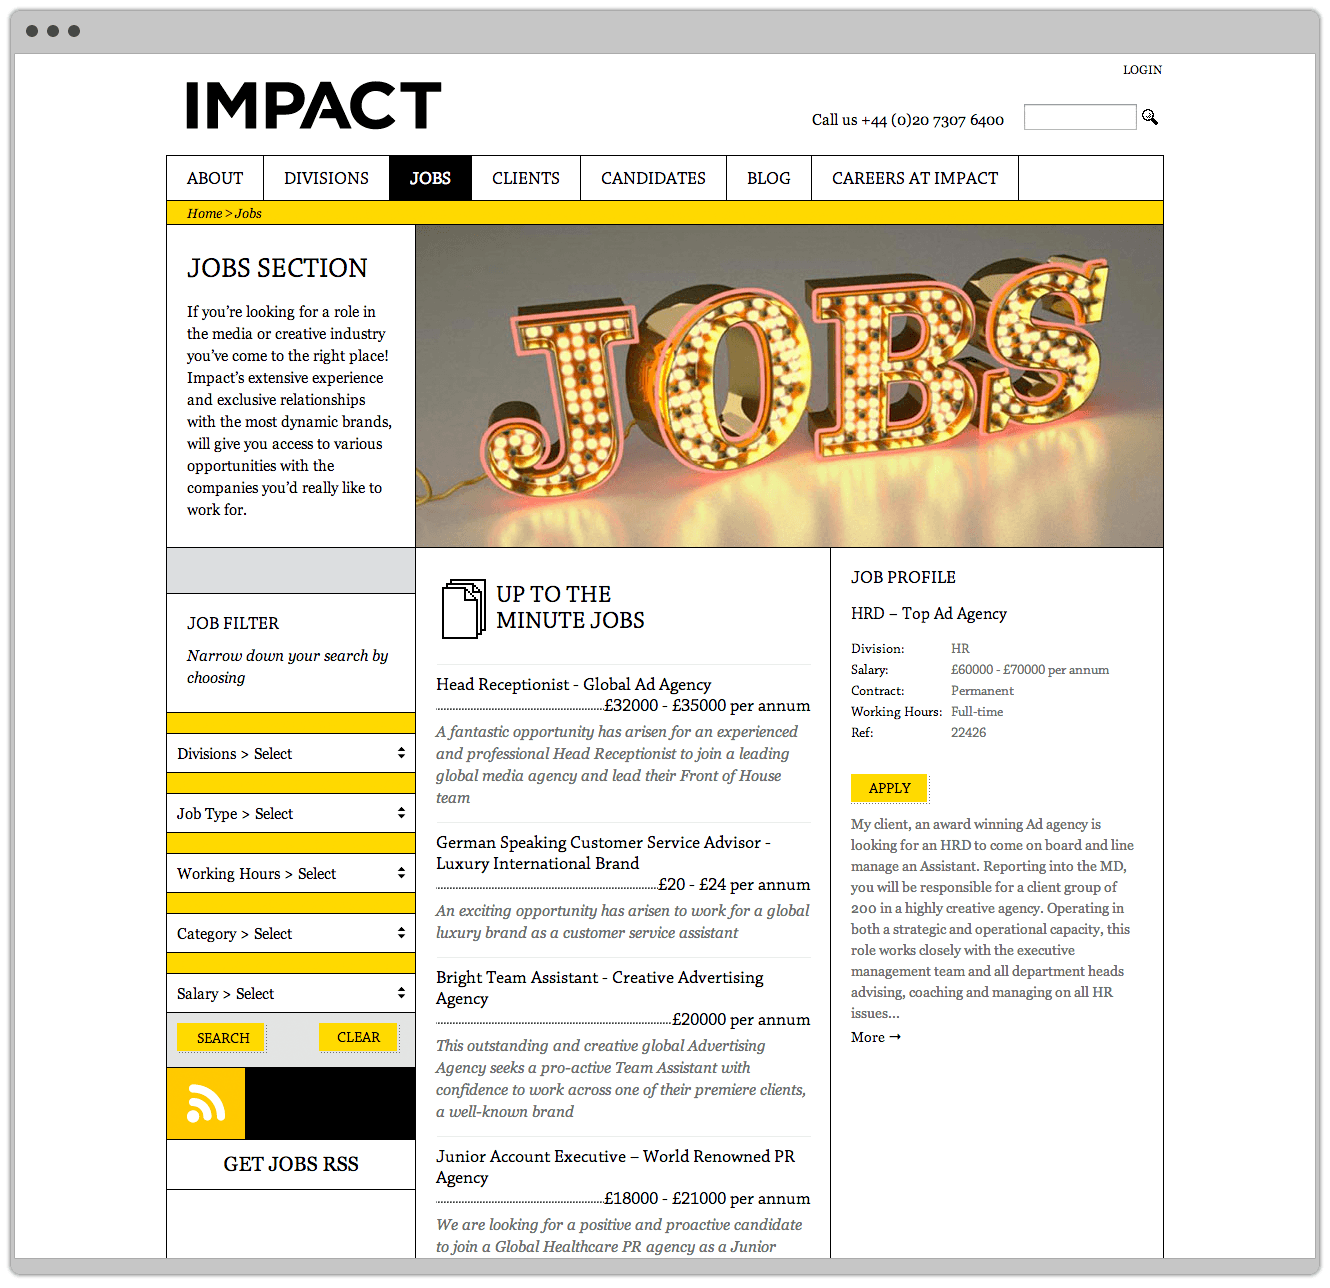 Job Listing On Recruitment Website For Www.impact London.com Designed By &&& Creative